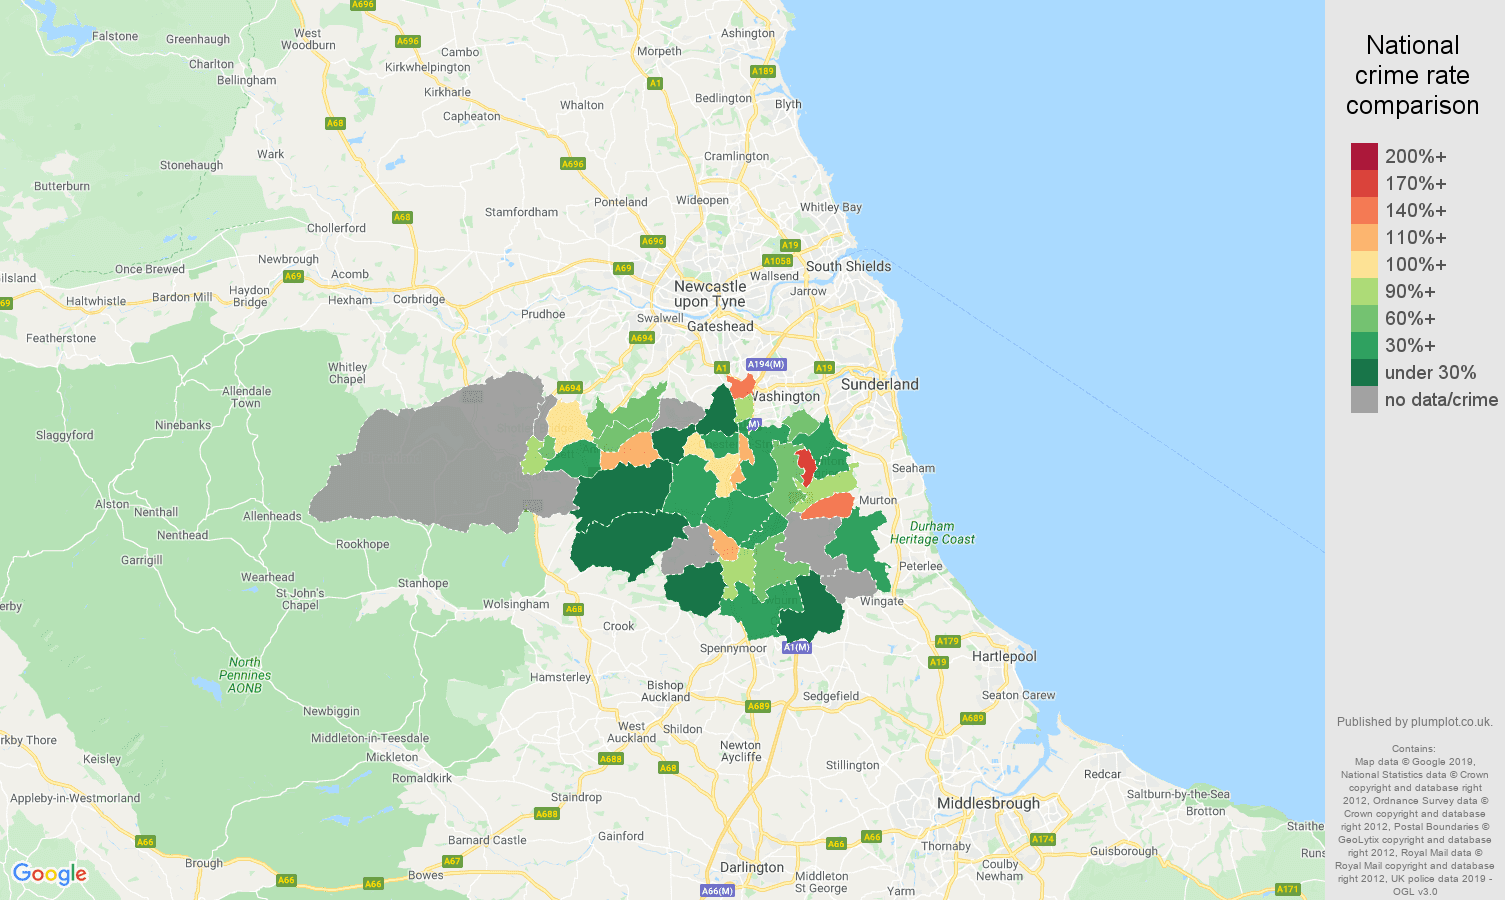 Durham possession of weapons crime rate comparison map